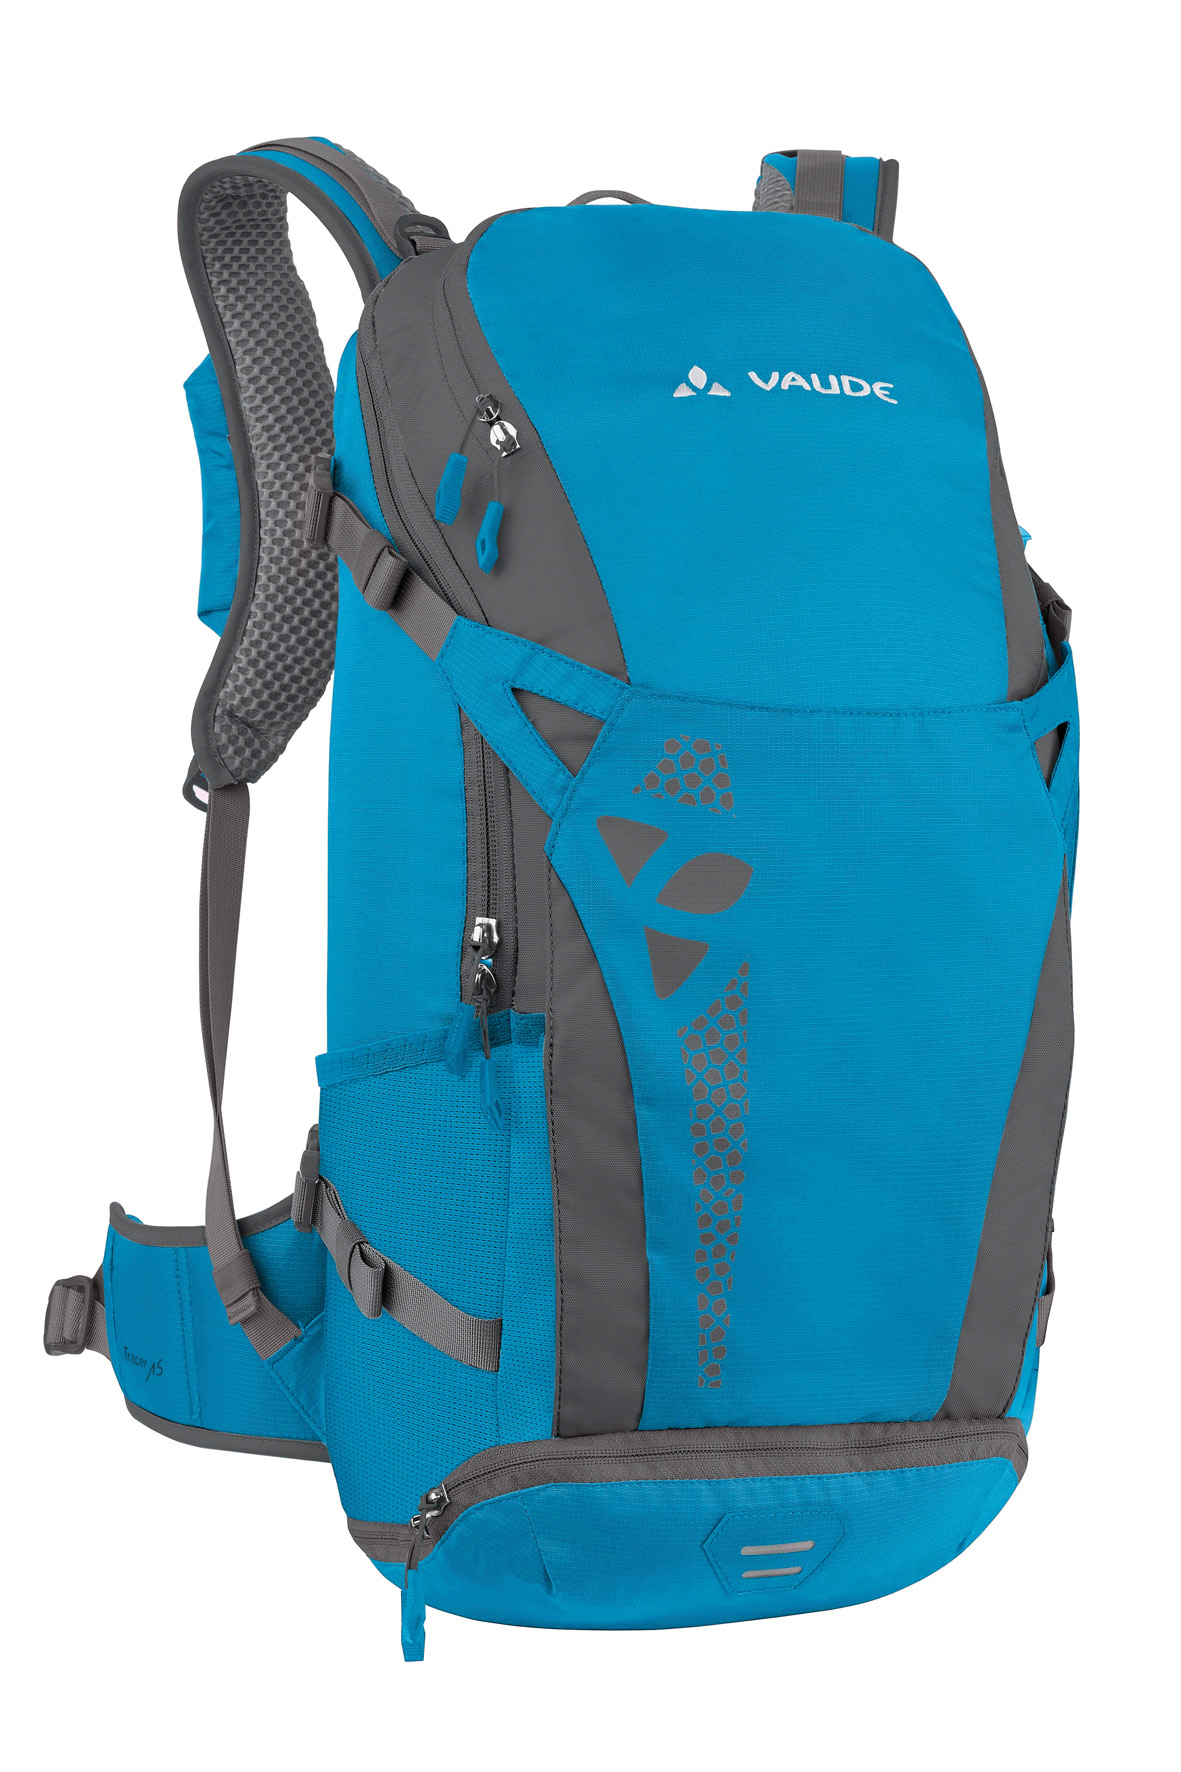 Tracer 15 teal blue  - schneider-sports